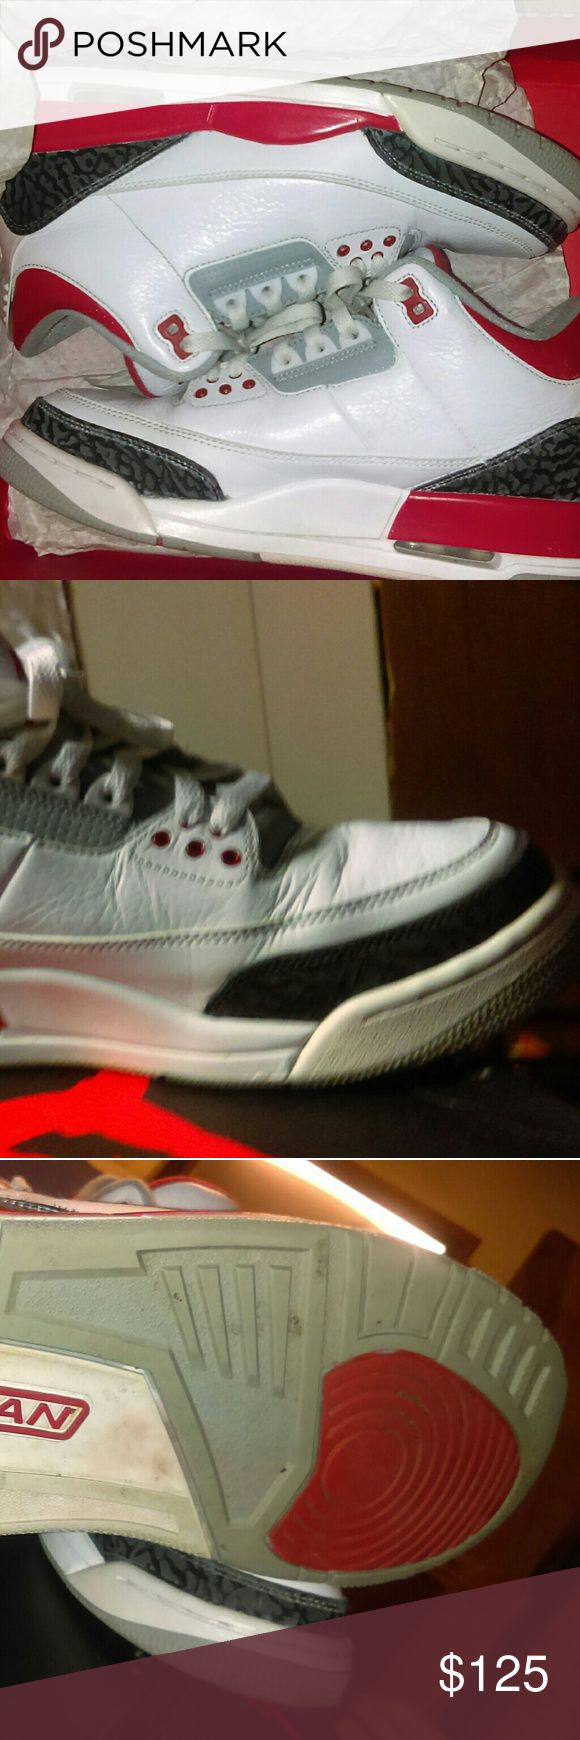 JORDAN retro 3s Infrared Fire red.great condition Jordan Shoes